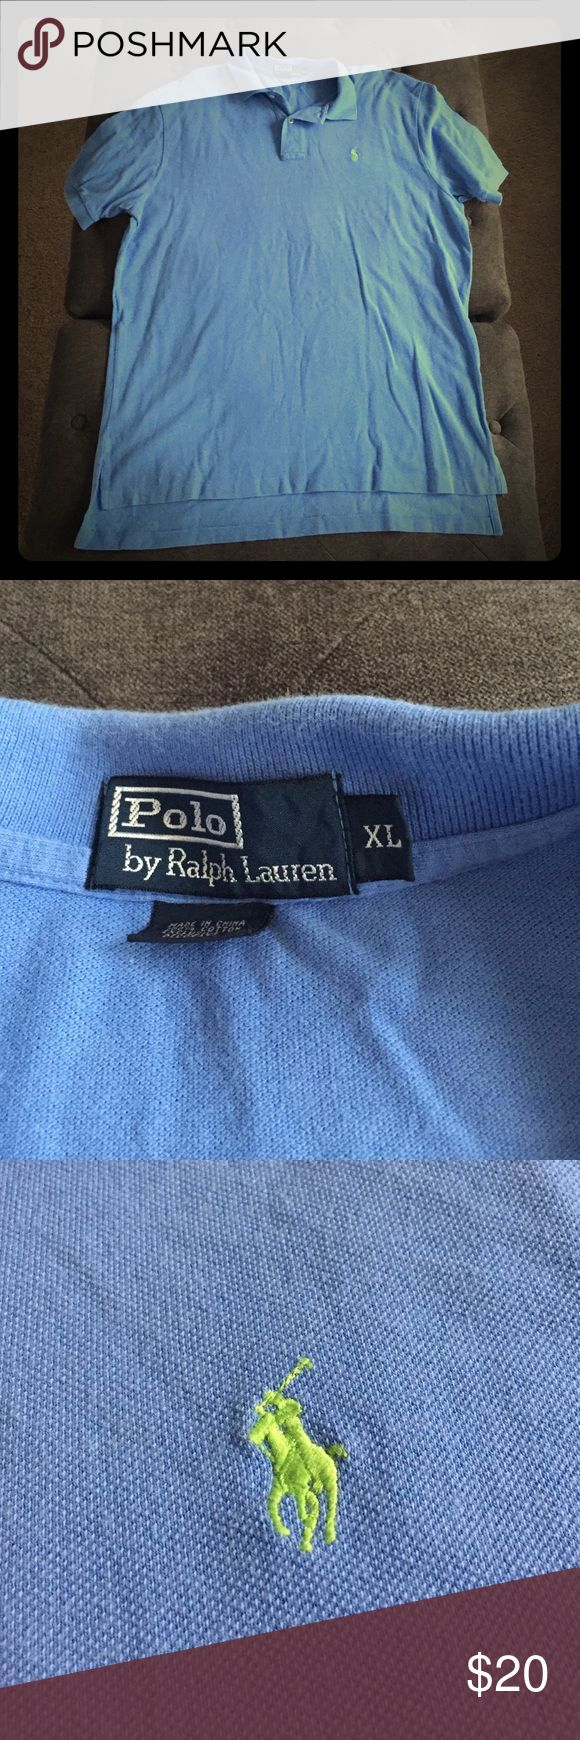 Preloved Men's Short Sleeve Polo! Preloved men's short sleeve light blue polo. In excellent condition with no signs of wear. 100% cotton. Machine washable. Polo by Ralph Lauren Shirts Polos